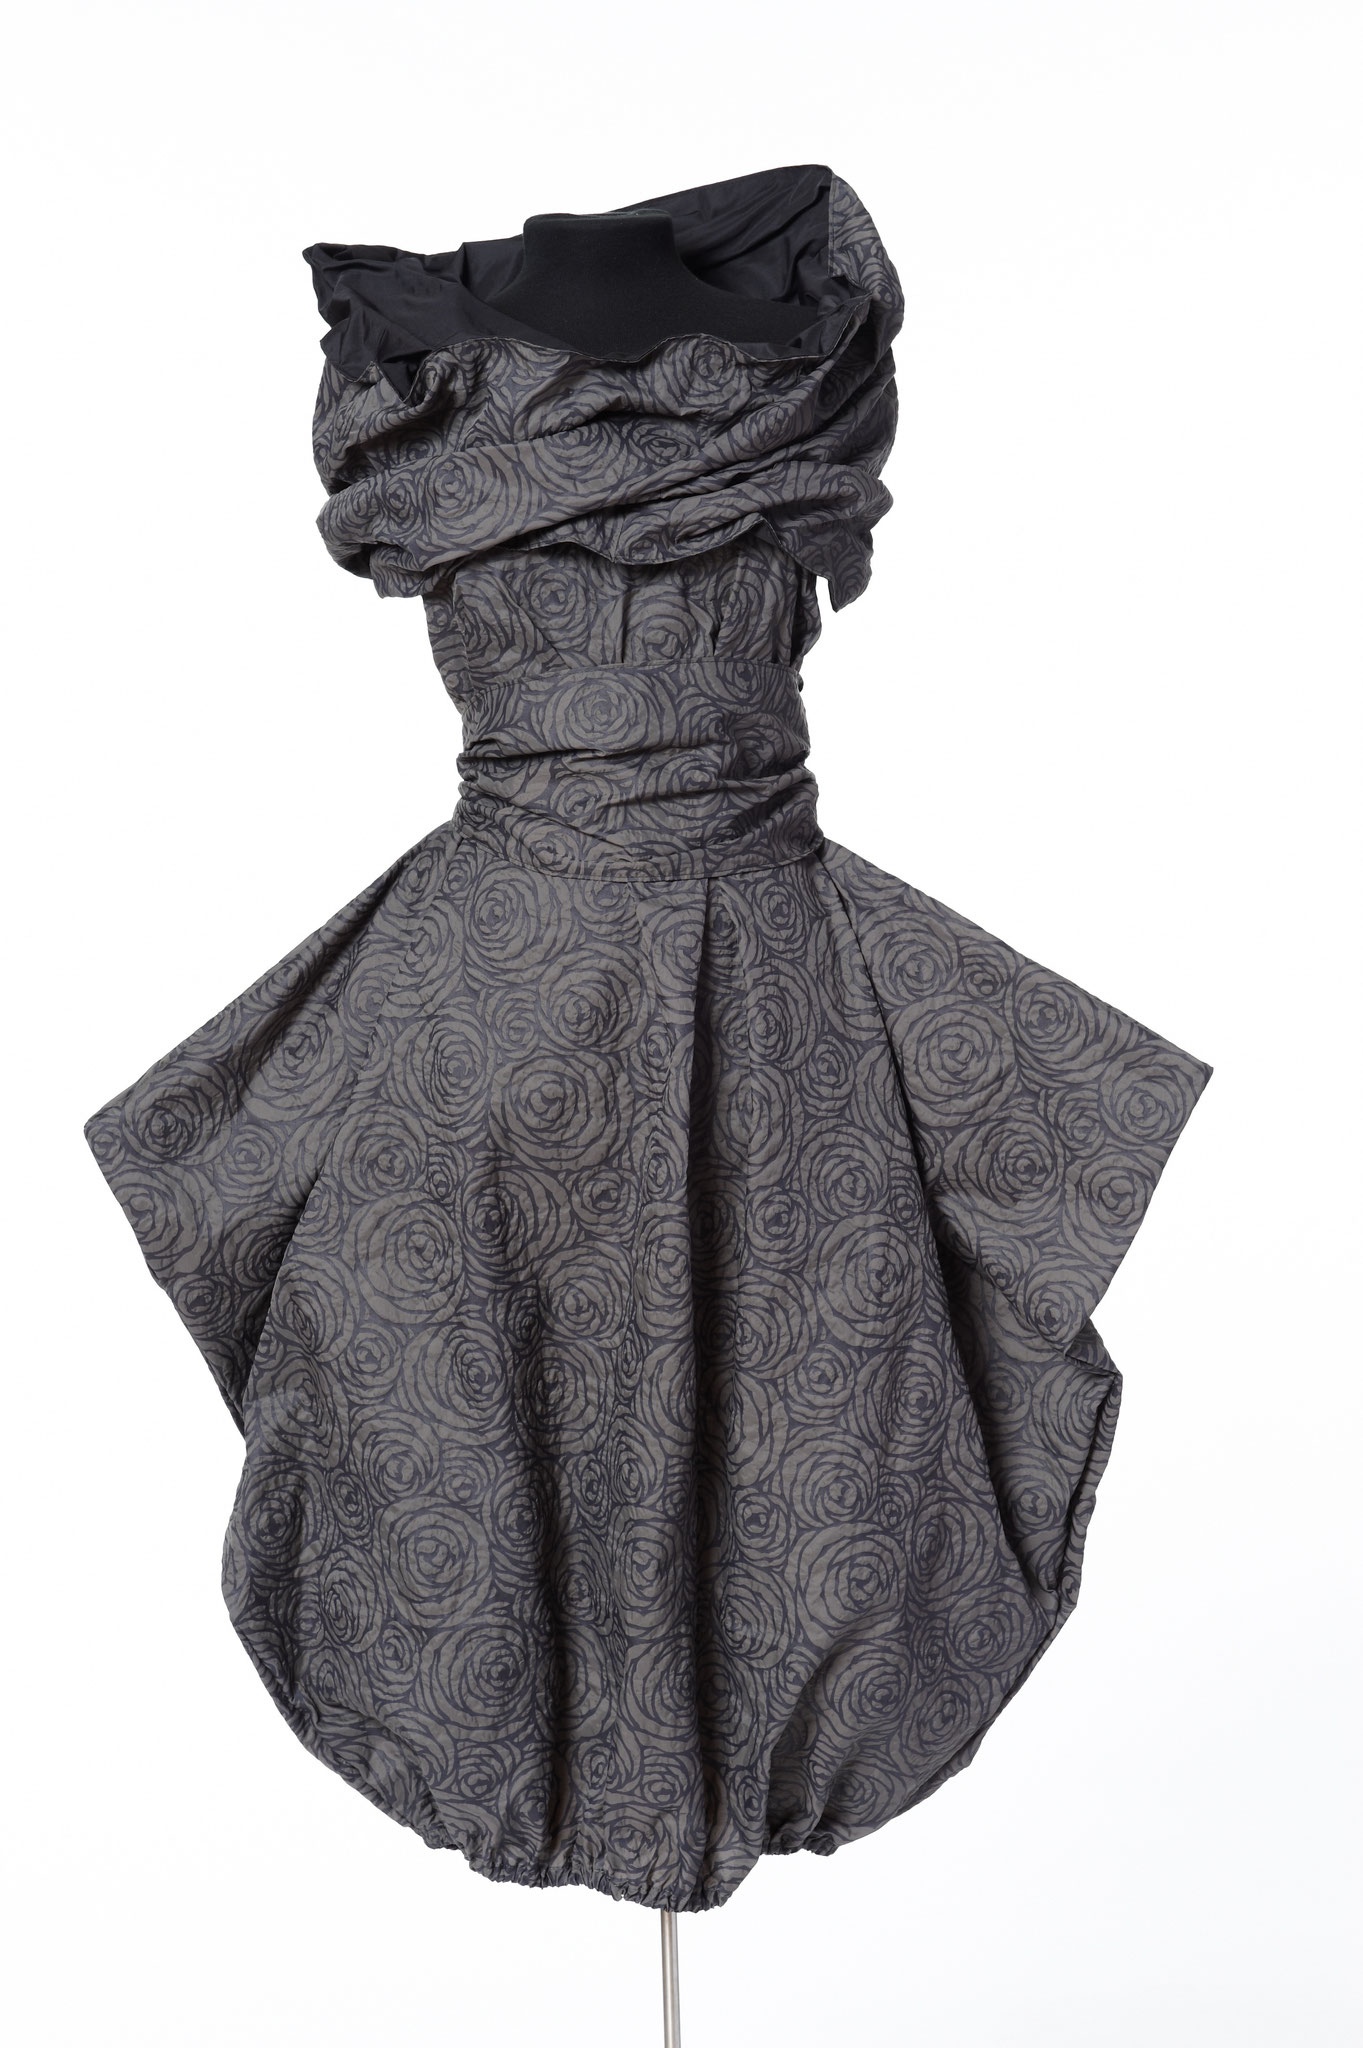 3-piece outfit: skirt, sash, scarf. Material: embossed microfibre